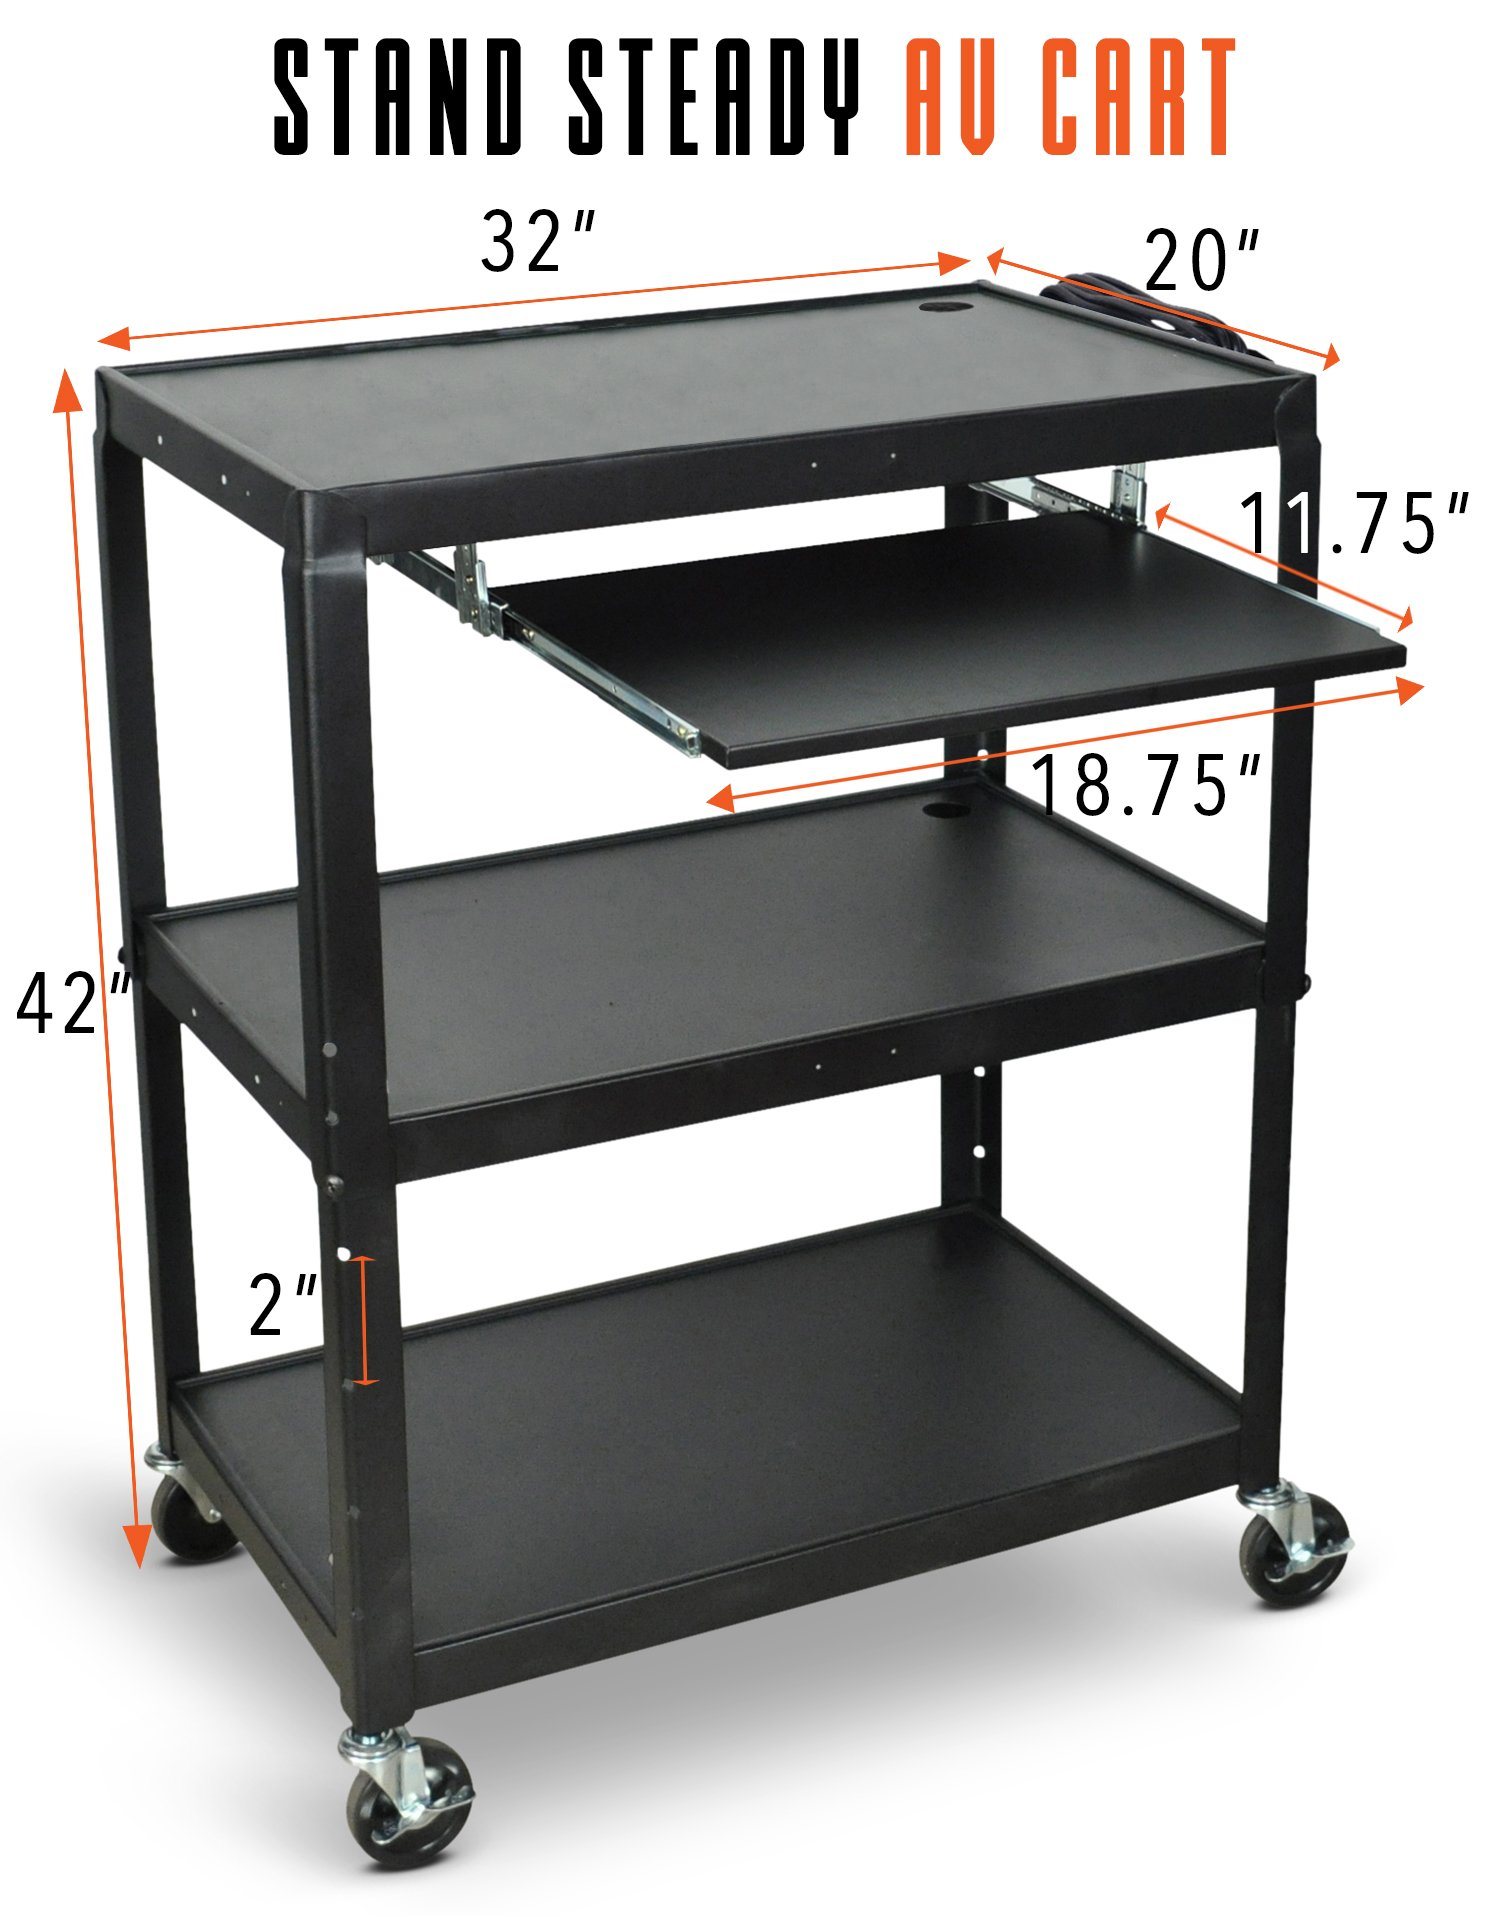 Line Leader Extra Wide AV Cart with Lockable Wheels -Adjustable Shelf Height- Includes Pullout Keyboard Tray and Cord Management! (42x32x20) (Extra Wide AV Cart - Black) by Stand Steady (Image #5)